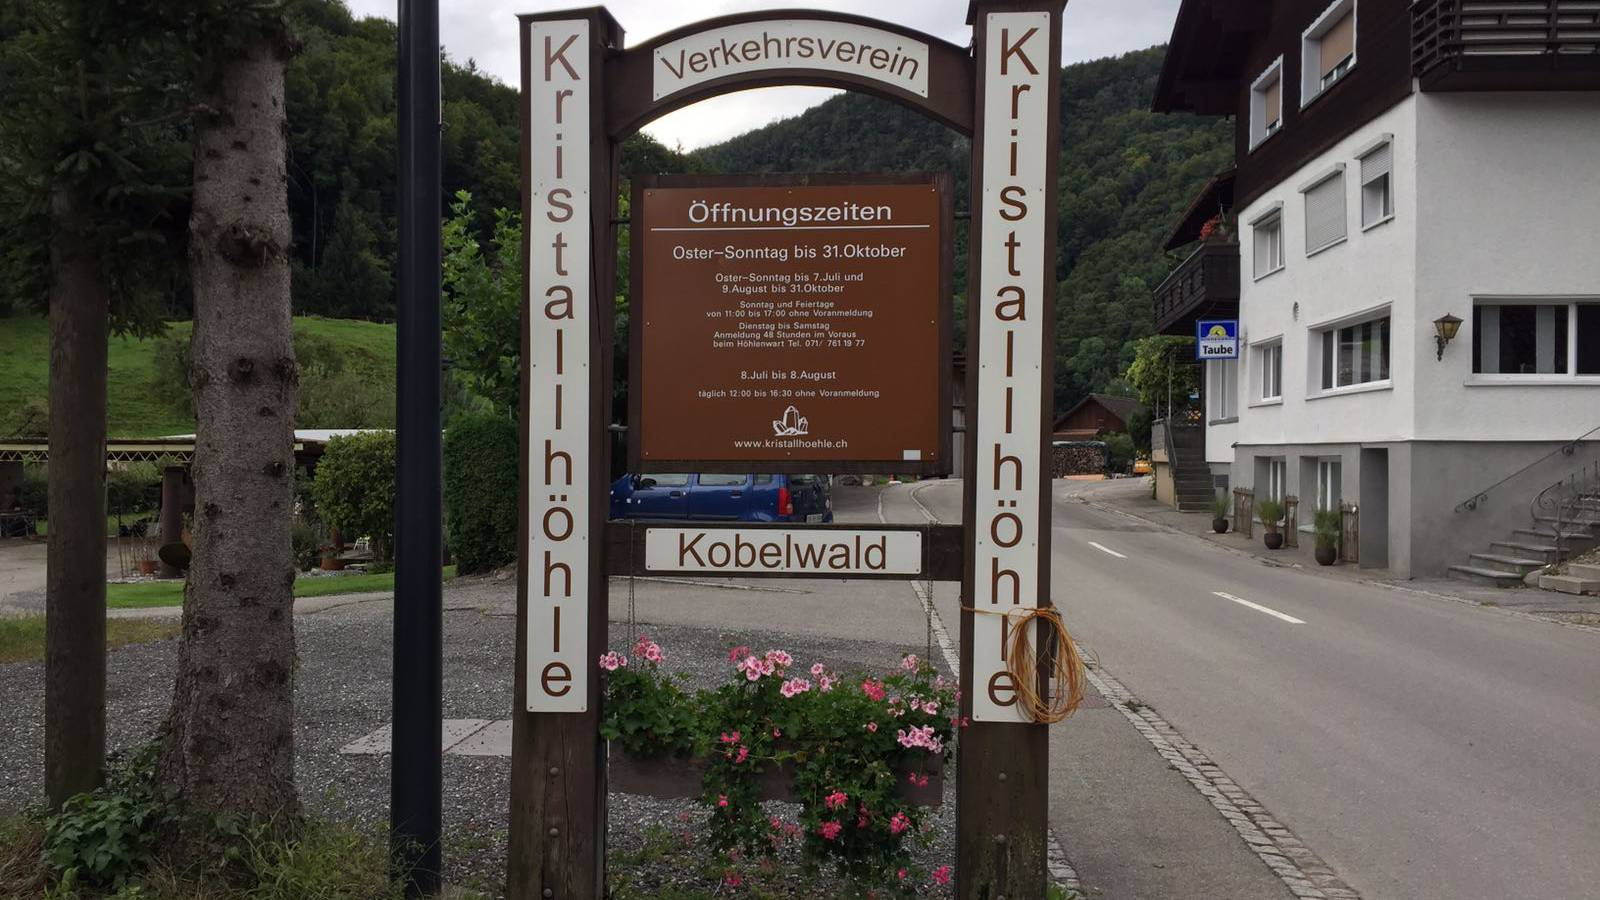 Was geschah in Kobelwald?